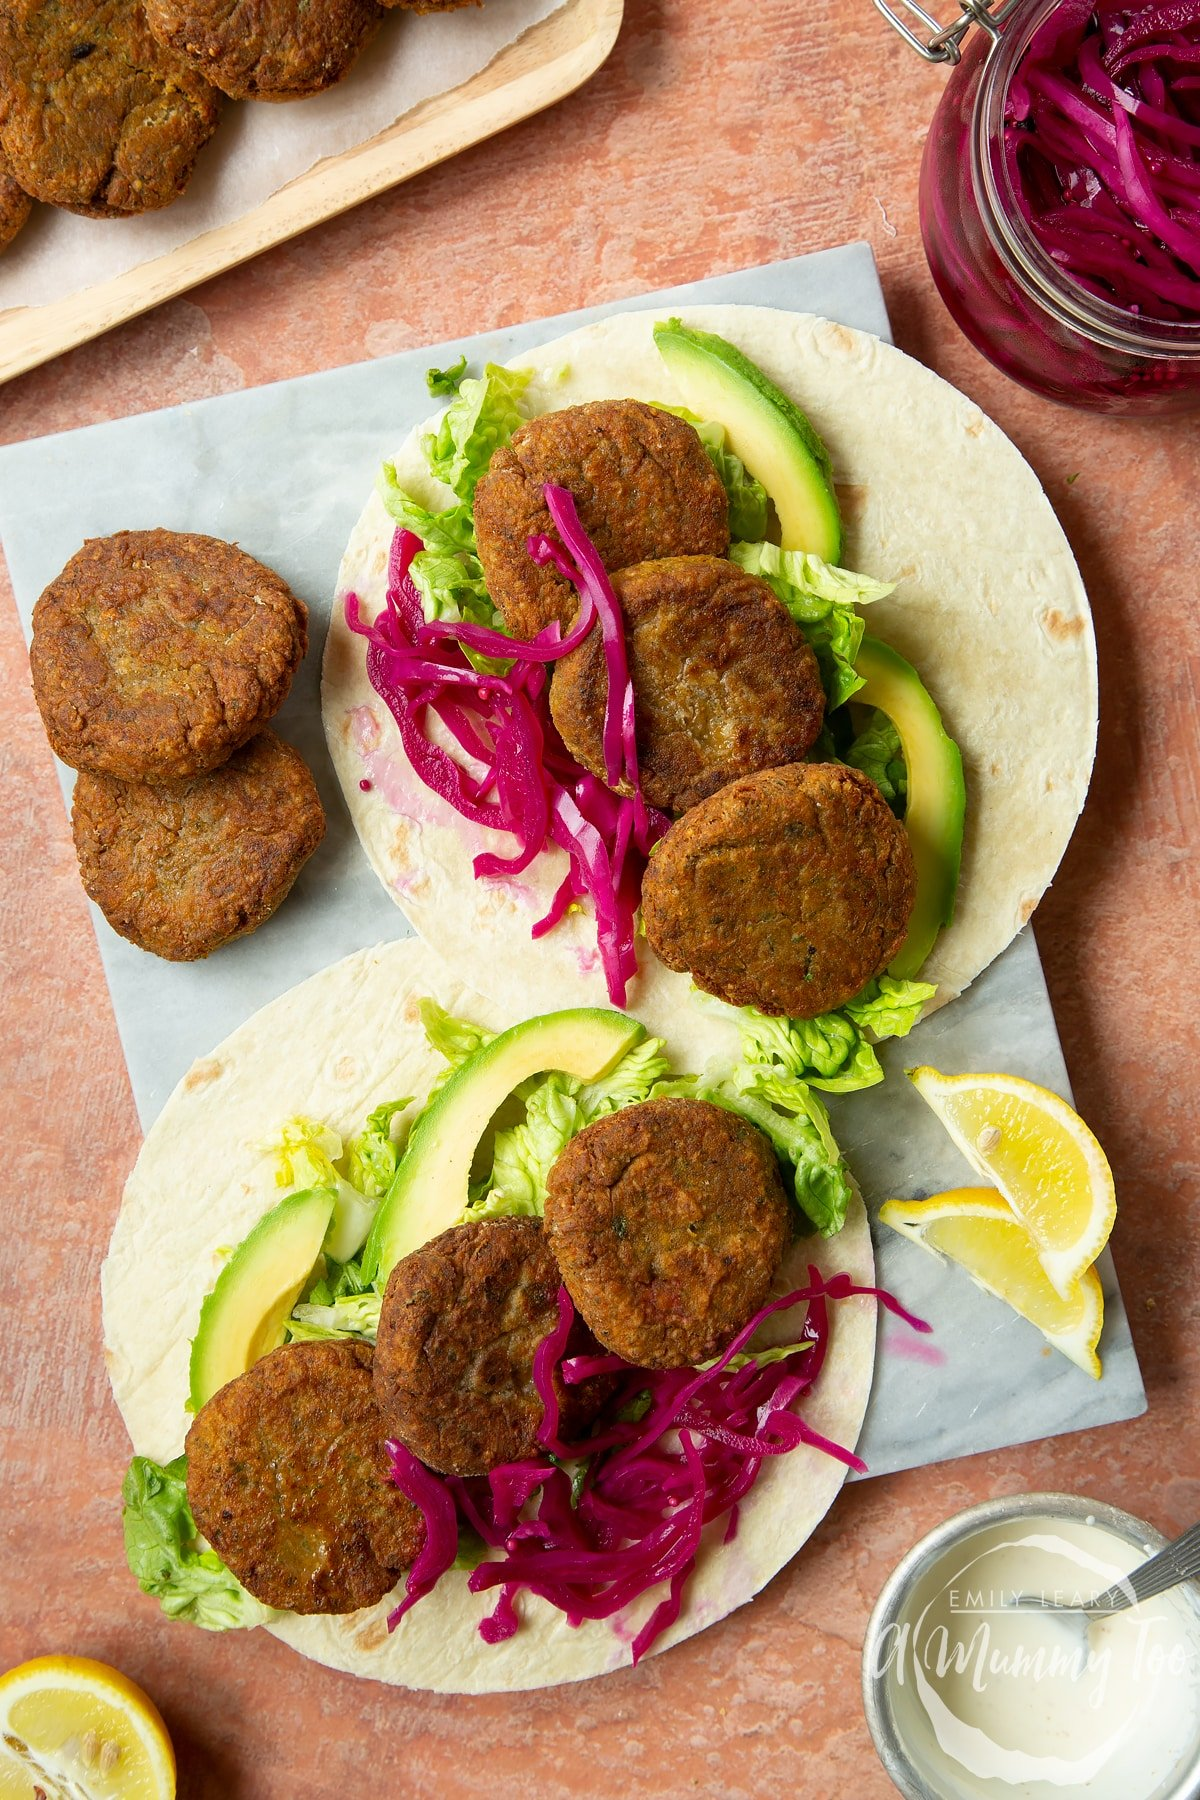 Two harissa falafel wraps arranged on a board with pickled cabbage and salad.